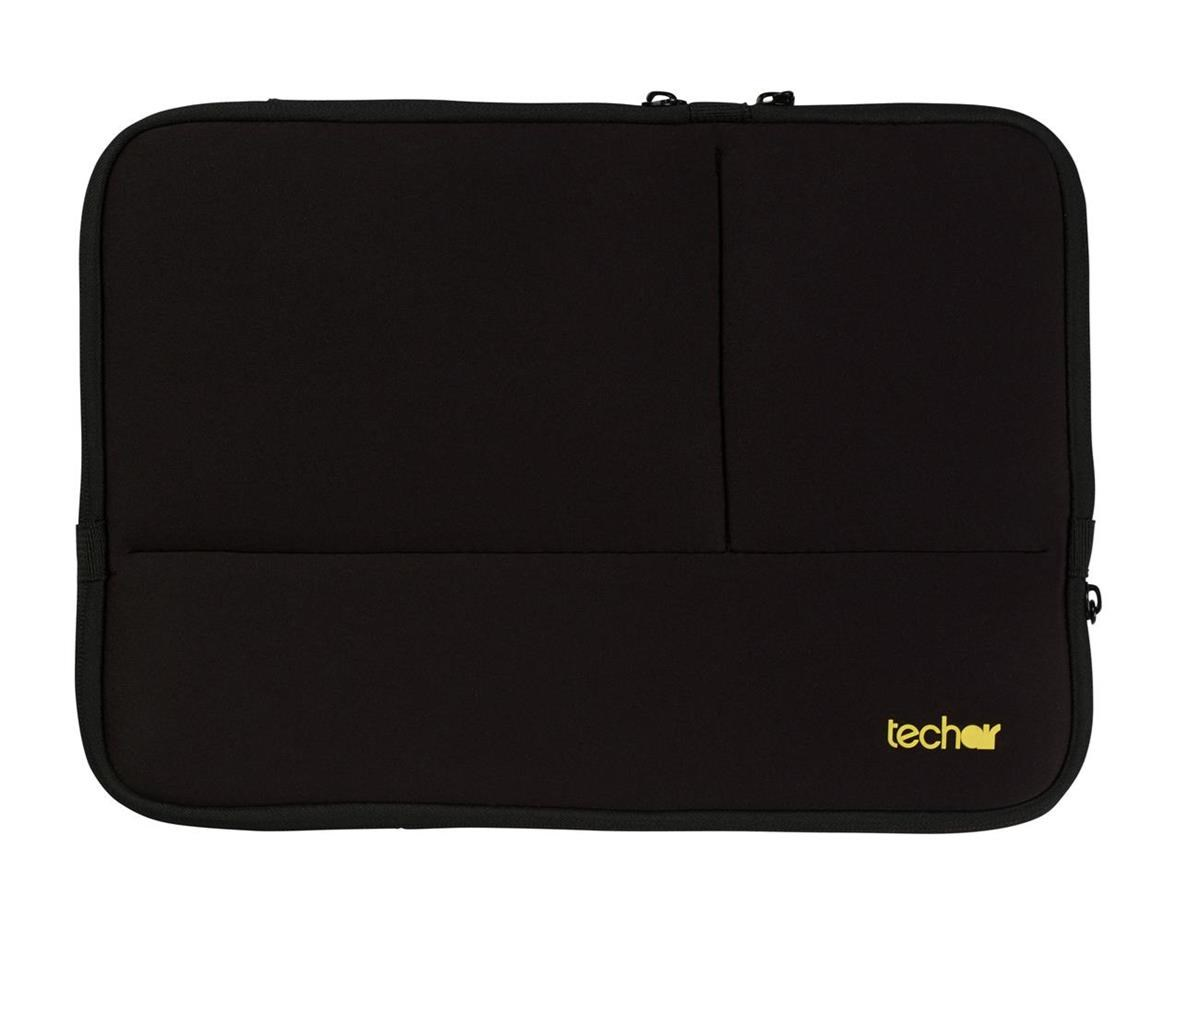 45c604bfac Techair Laptop Sleeve with 3 Zipped Pockets for 15.6 inch Laptops ...